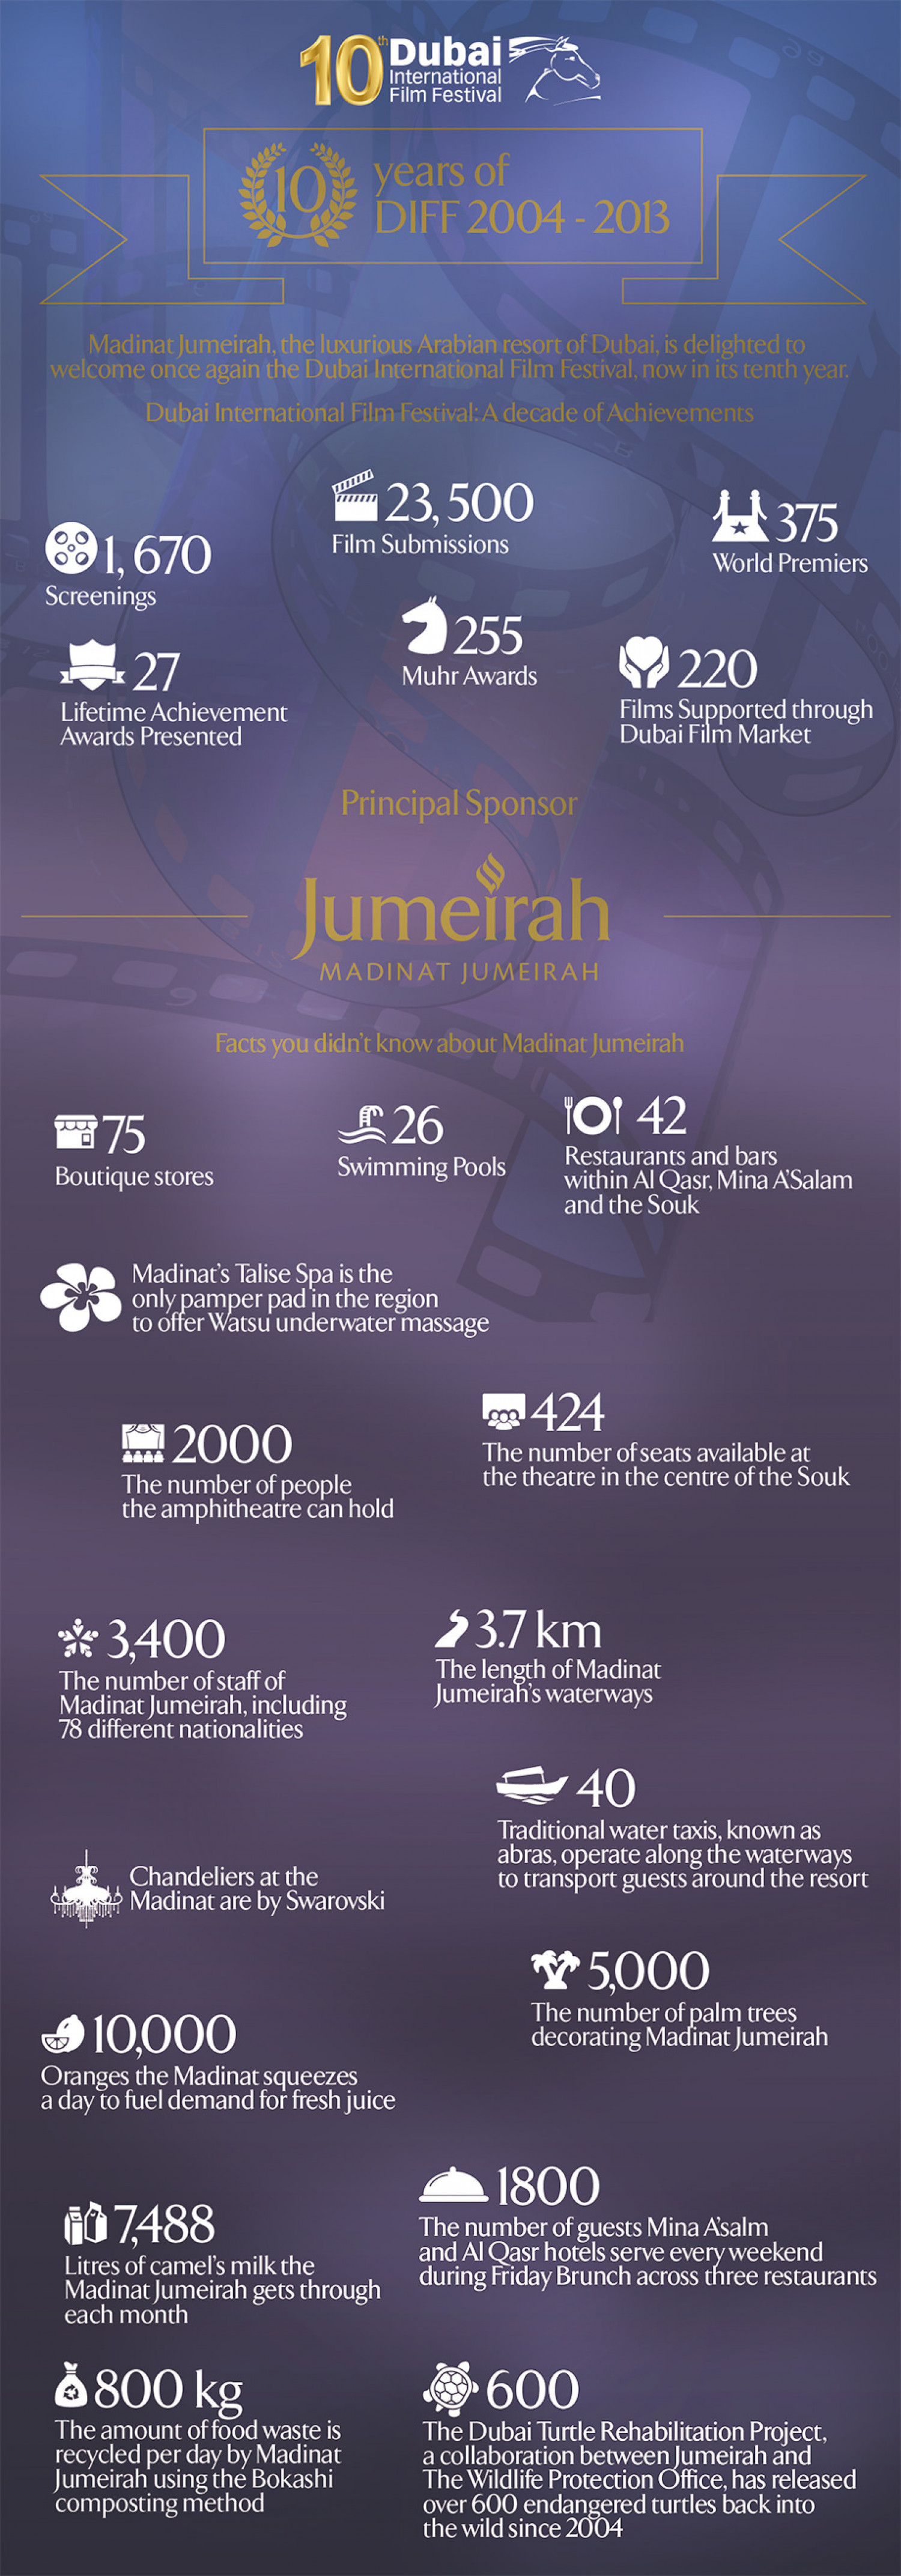 Dubai International Film Festival Infographic